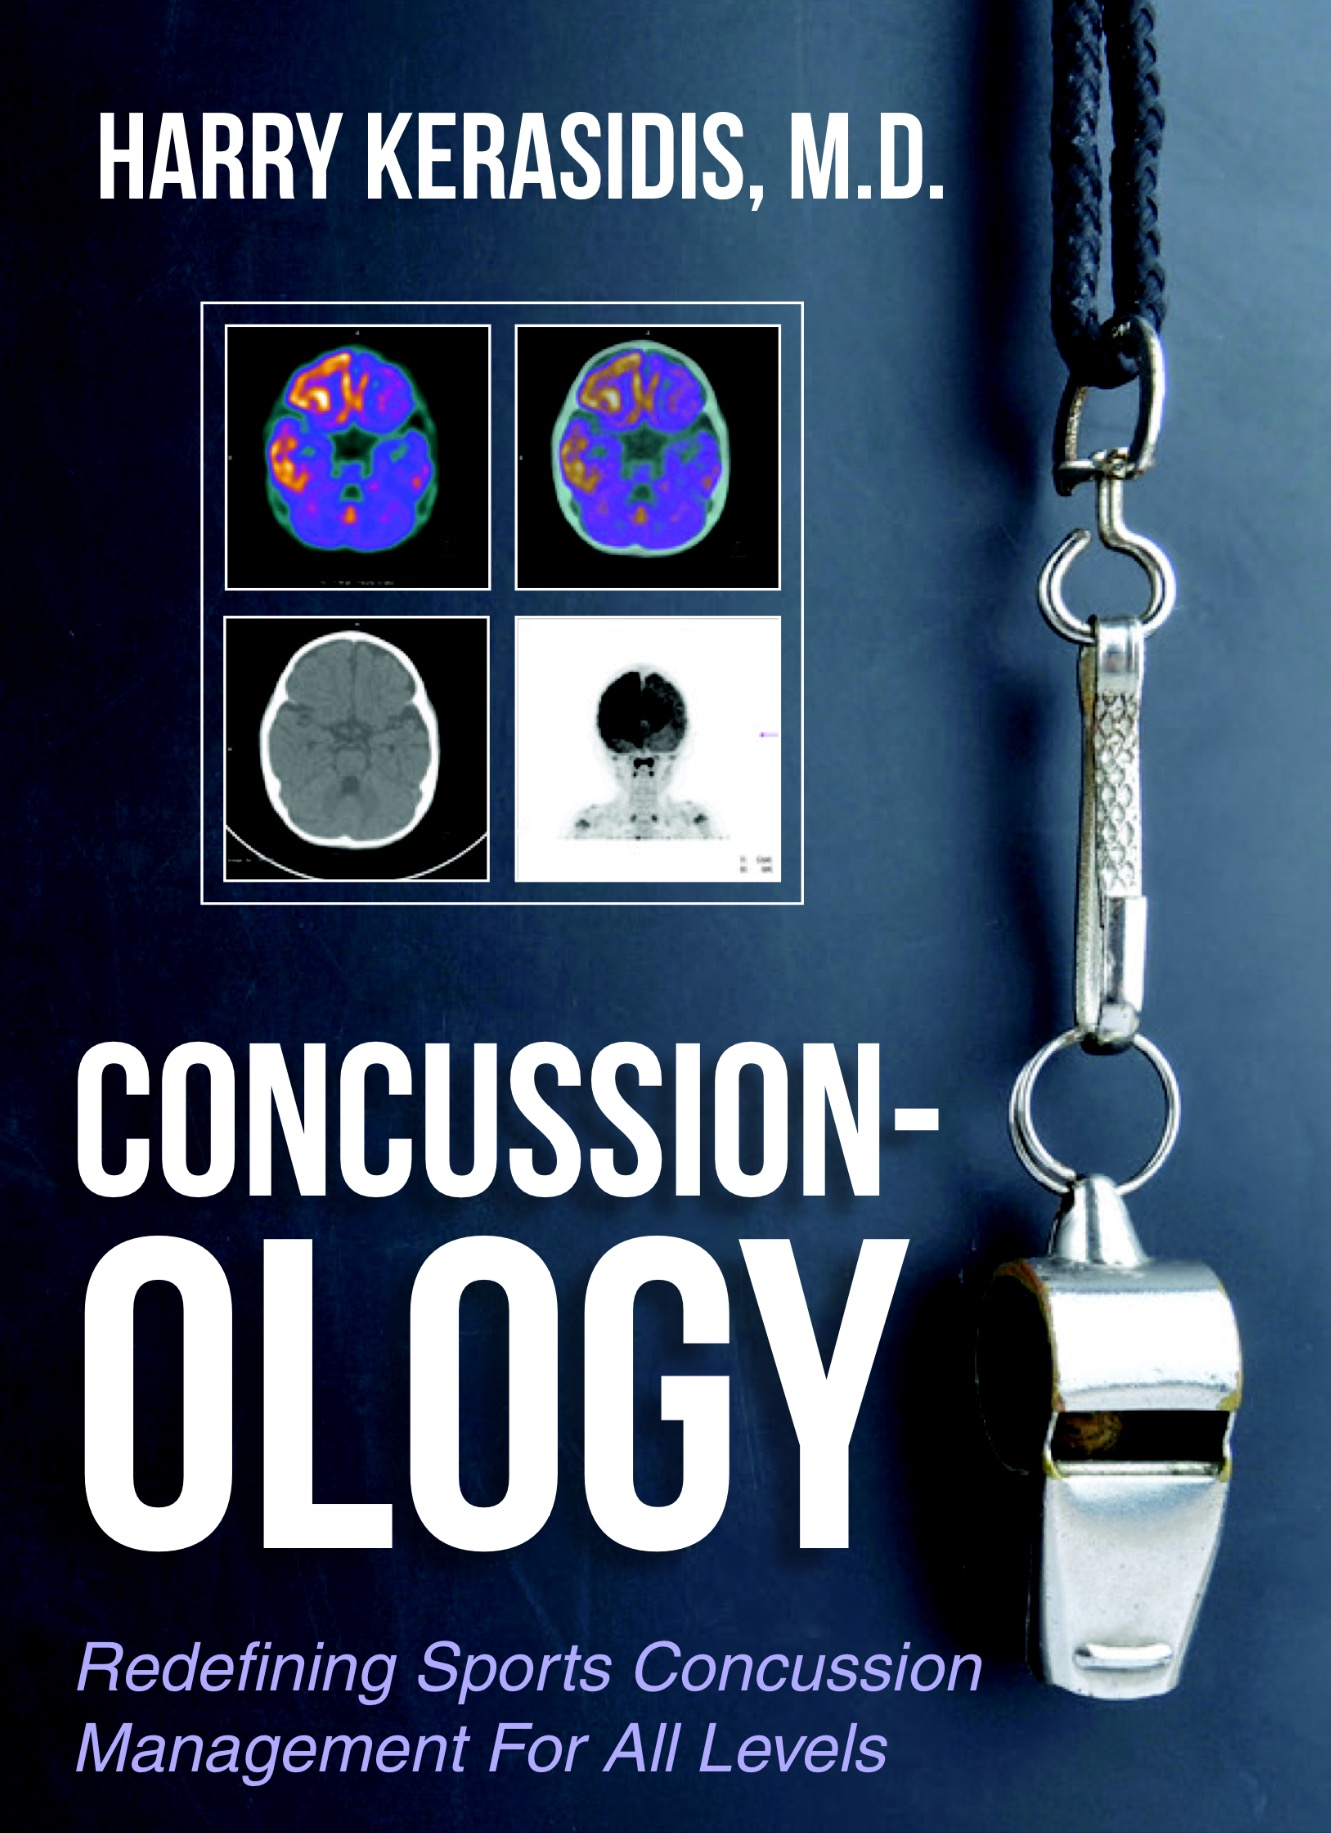 Concussion-ology-cover copy